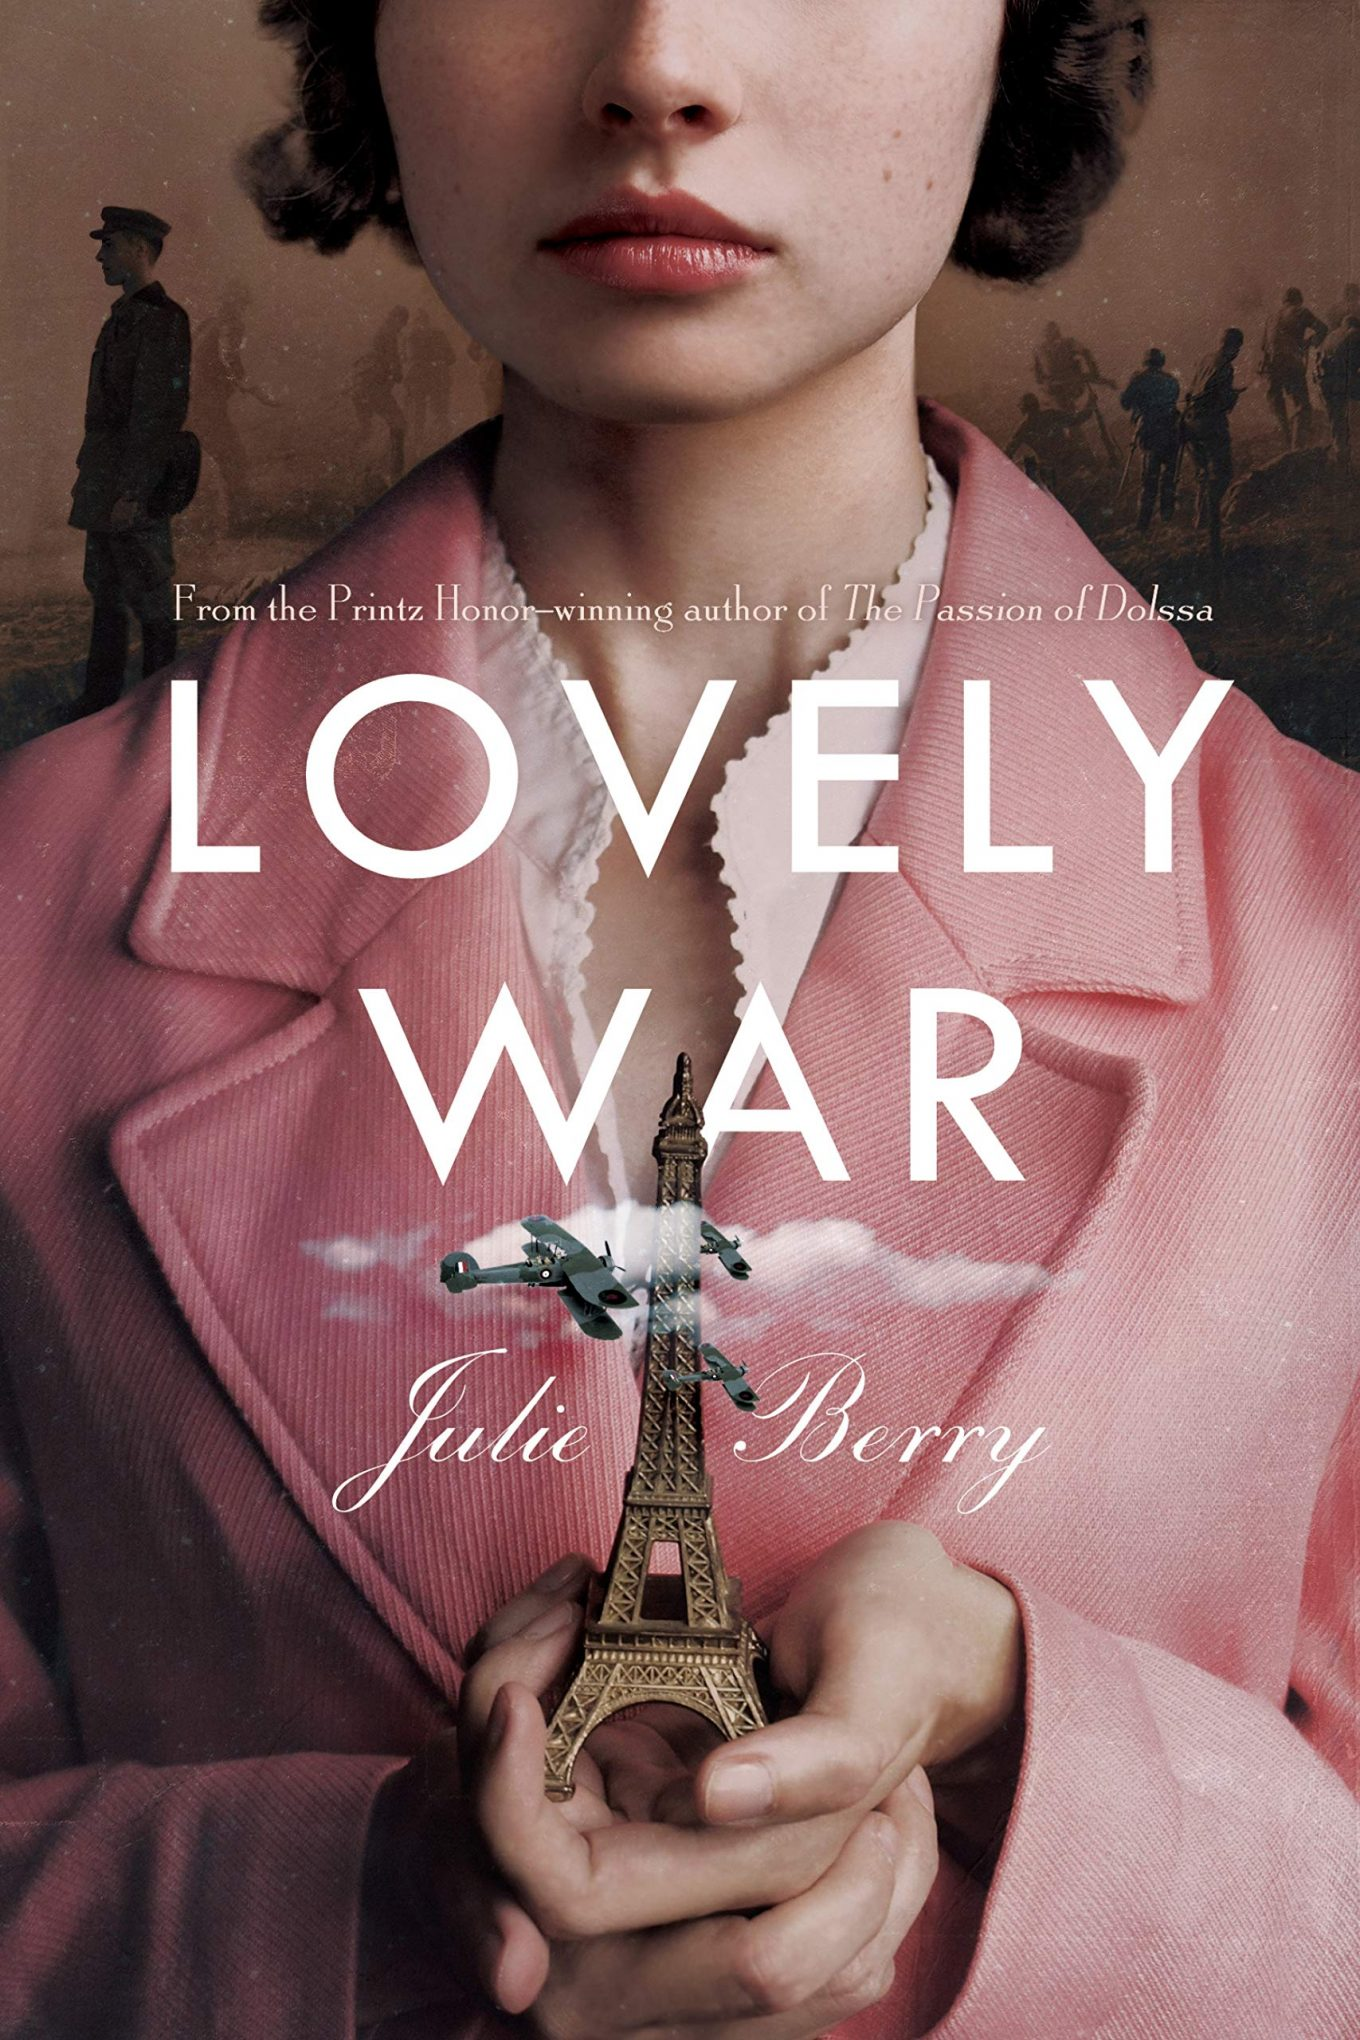 Lovely War by Julie Berry, Reviewed by Lecia Sun